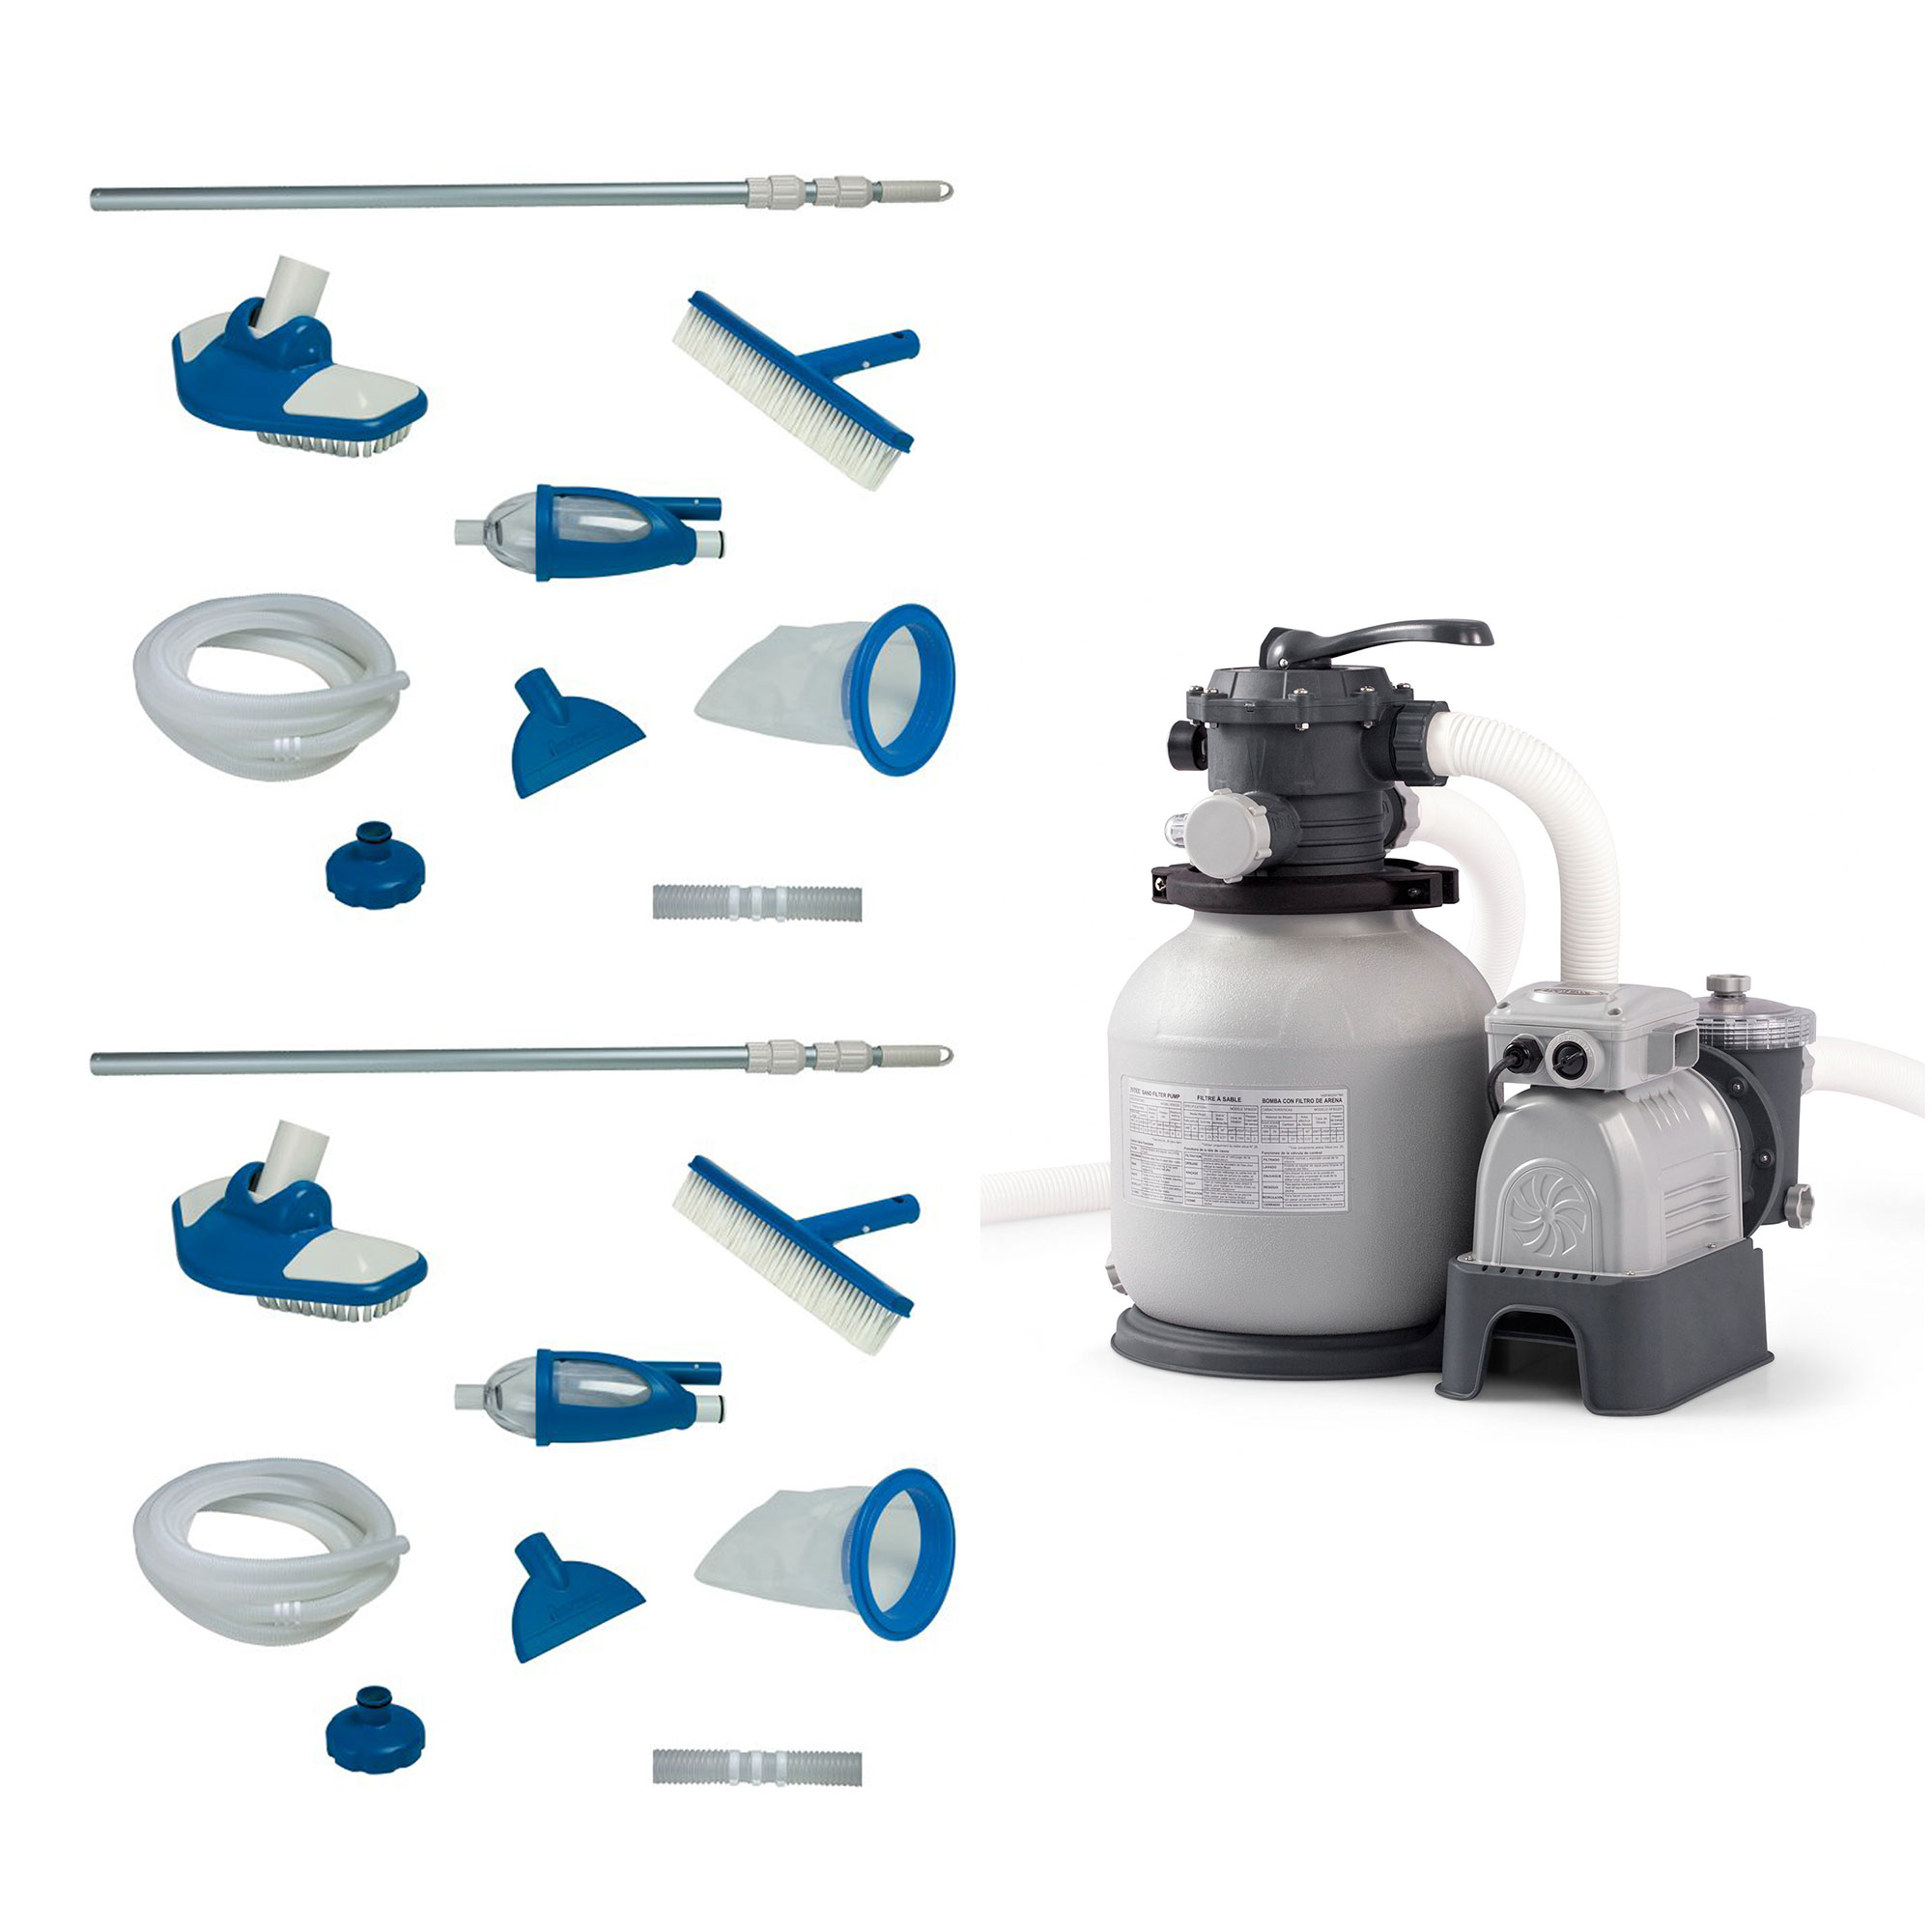 Intex Deluxe Pool Maintenance Kit with Vacuum & Pole (2 Pack) & Sand Filter Pump